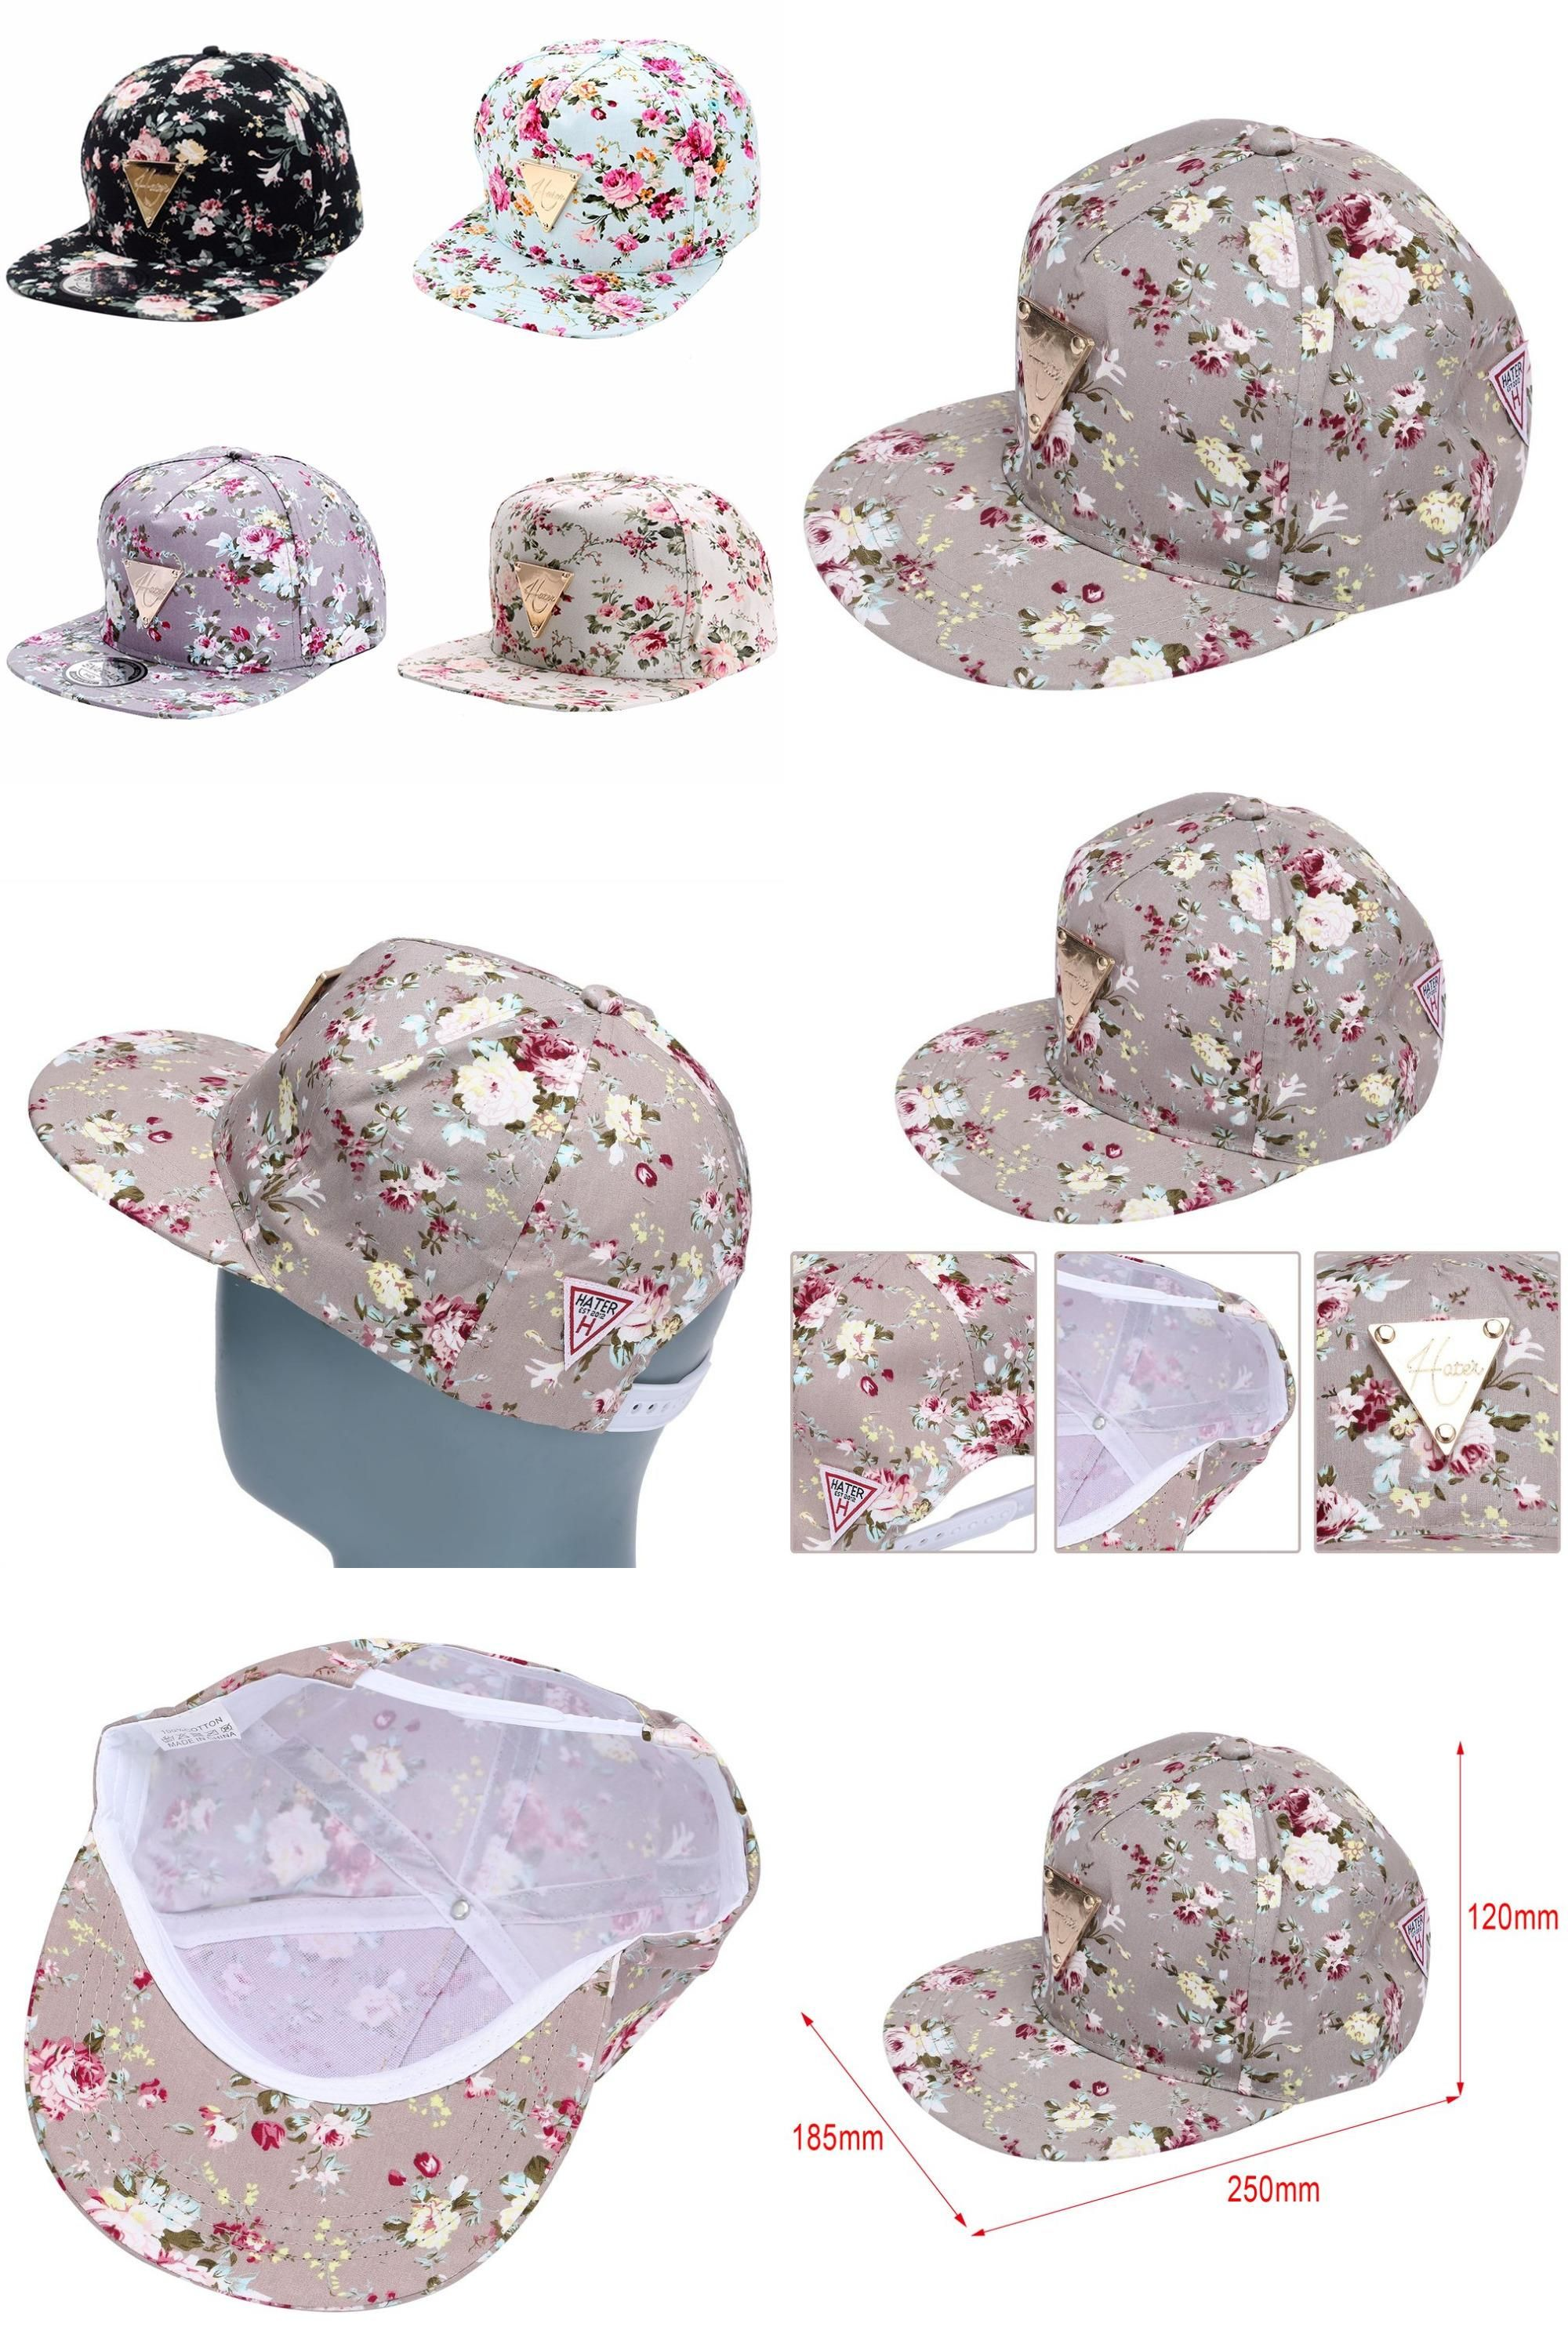 [Visit to Buy] High Quality Women summer caps Embroidered Floral Flower Snapback flat hip hop caps Adjustable Baseball gorras Caps summer  hats #Advertisement